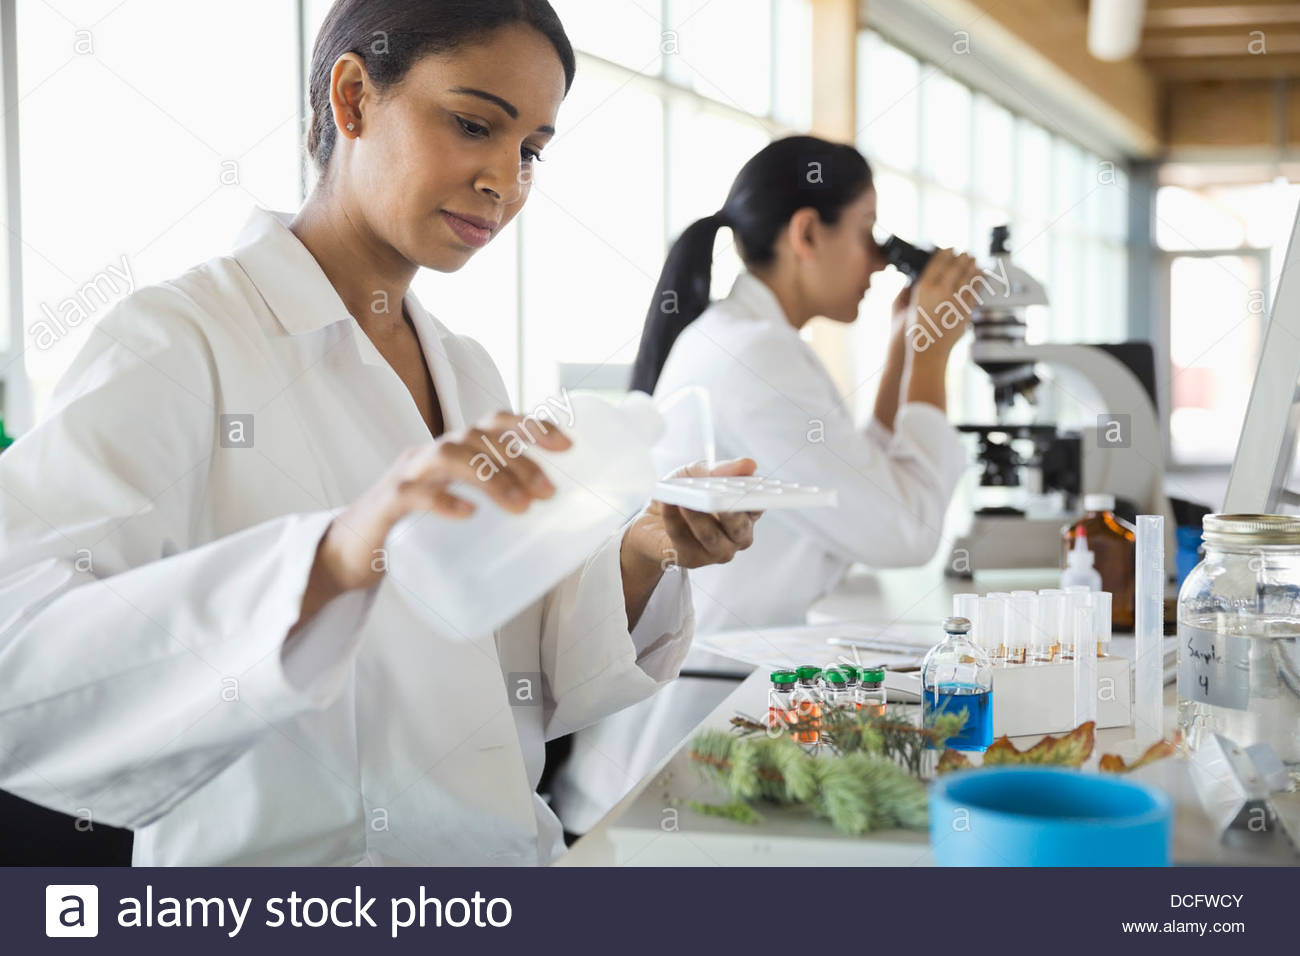 Botanists working in laboratory - Stock Image